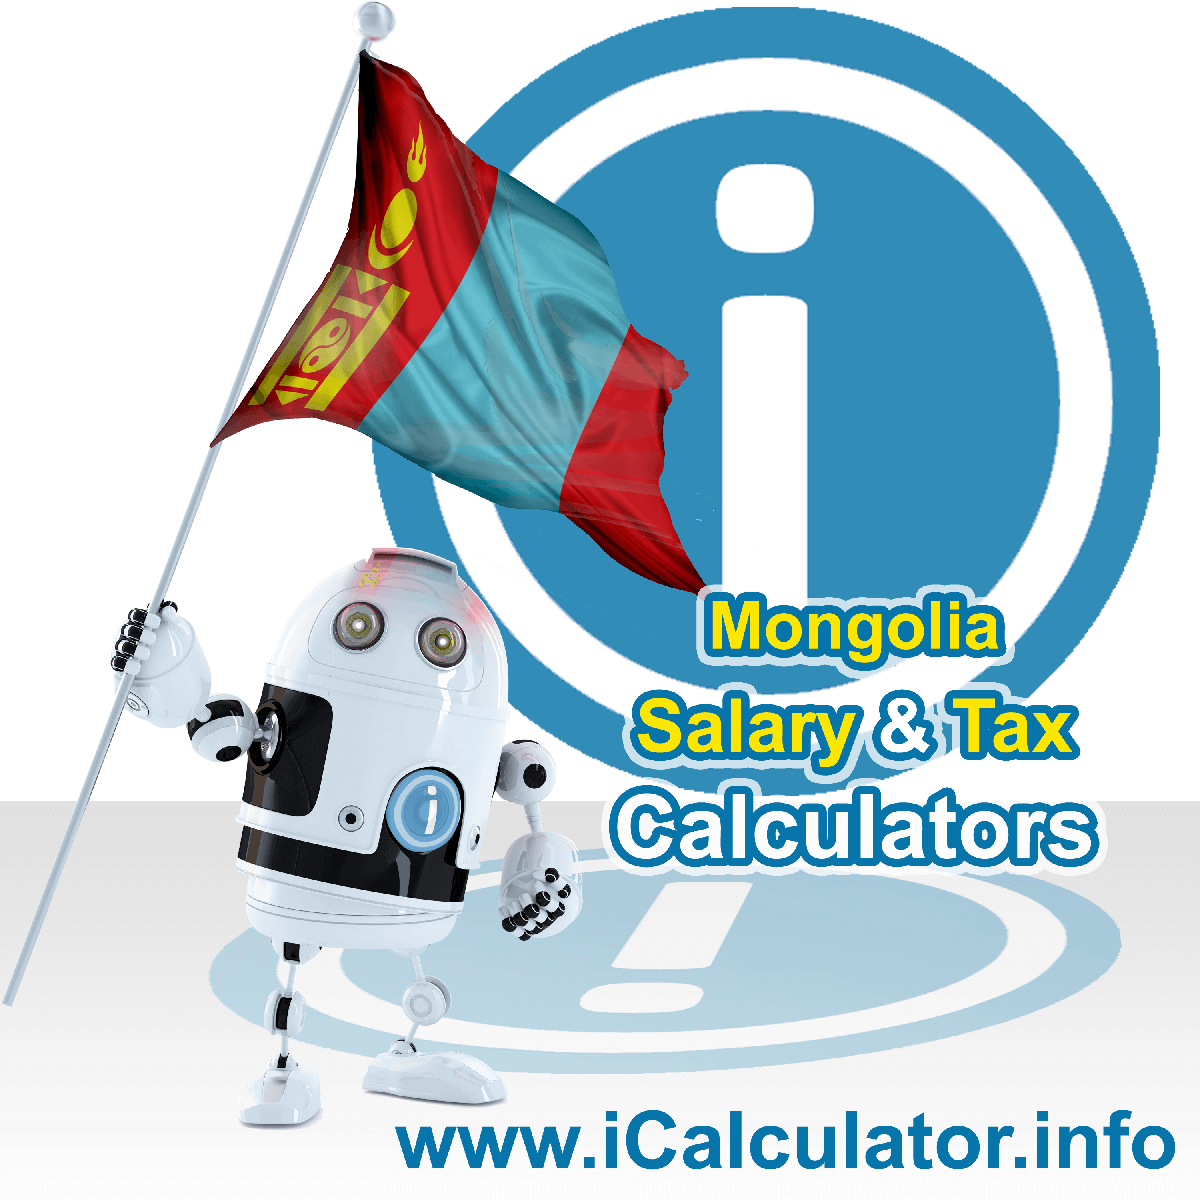 Mongolia Wage Calculator. This image shows the Mongolia flag and information relating to the tax formula for the Mongolia Tax Calculator